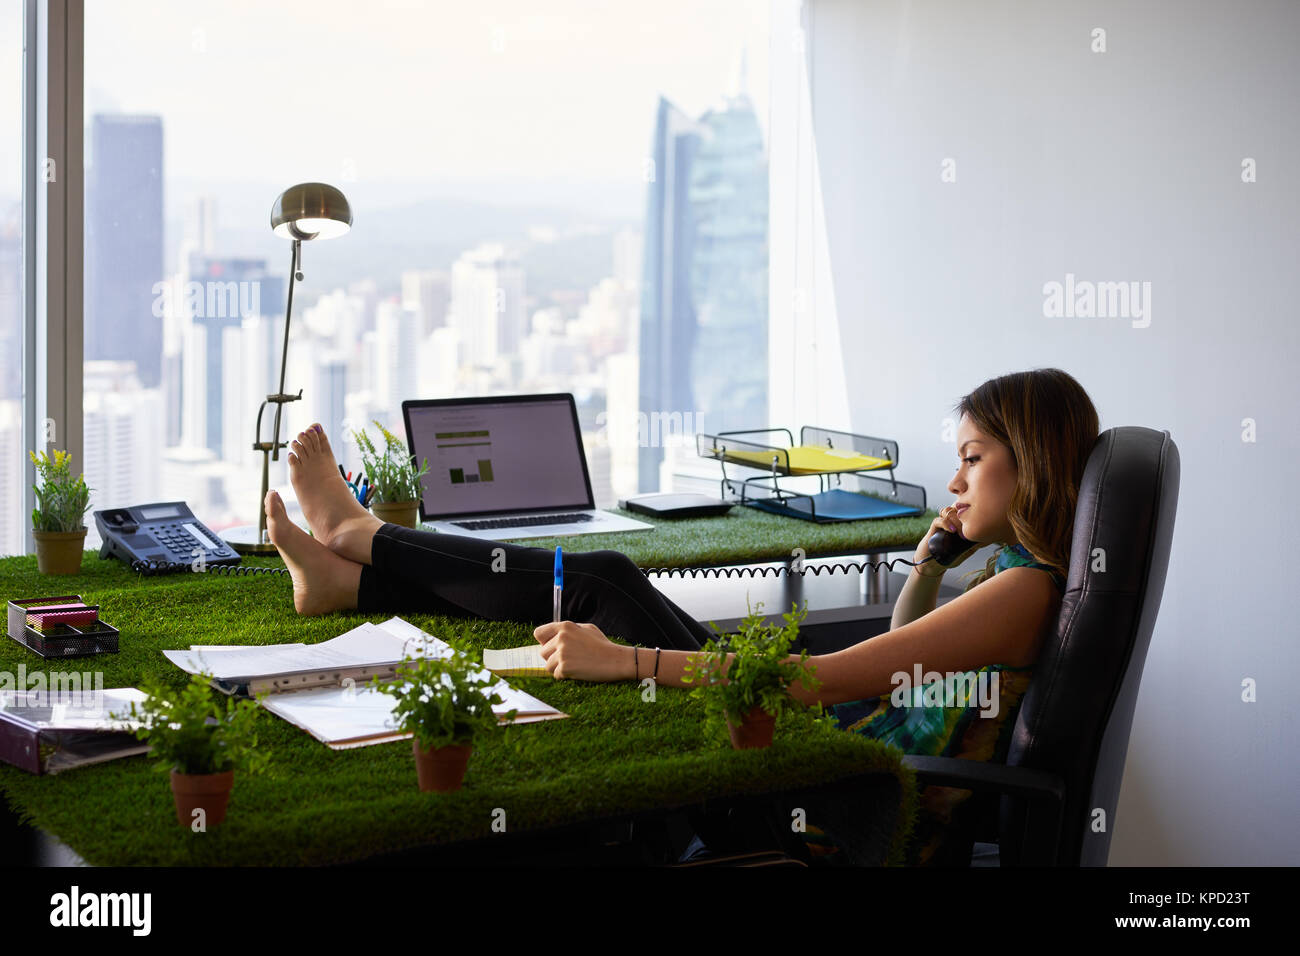 Environmentalist Woman Writes Note Barefeet On Office Desk - Stock Image